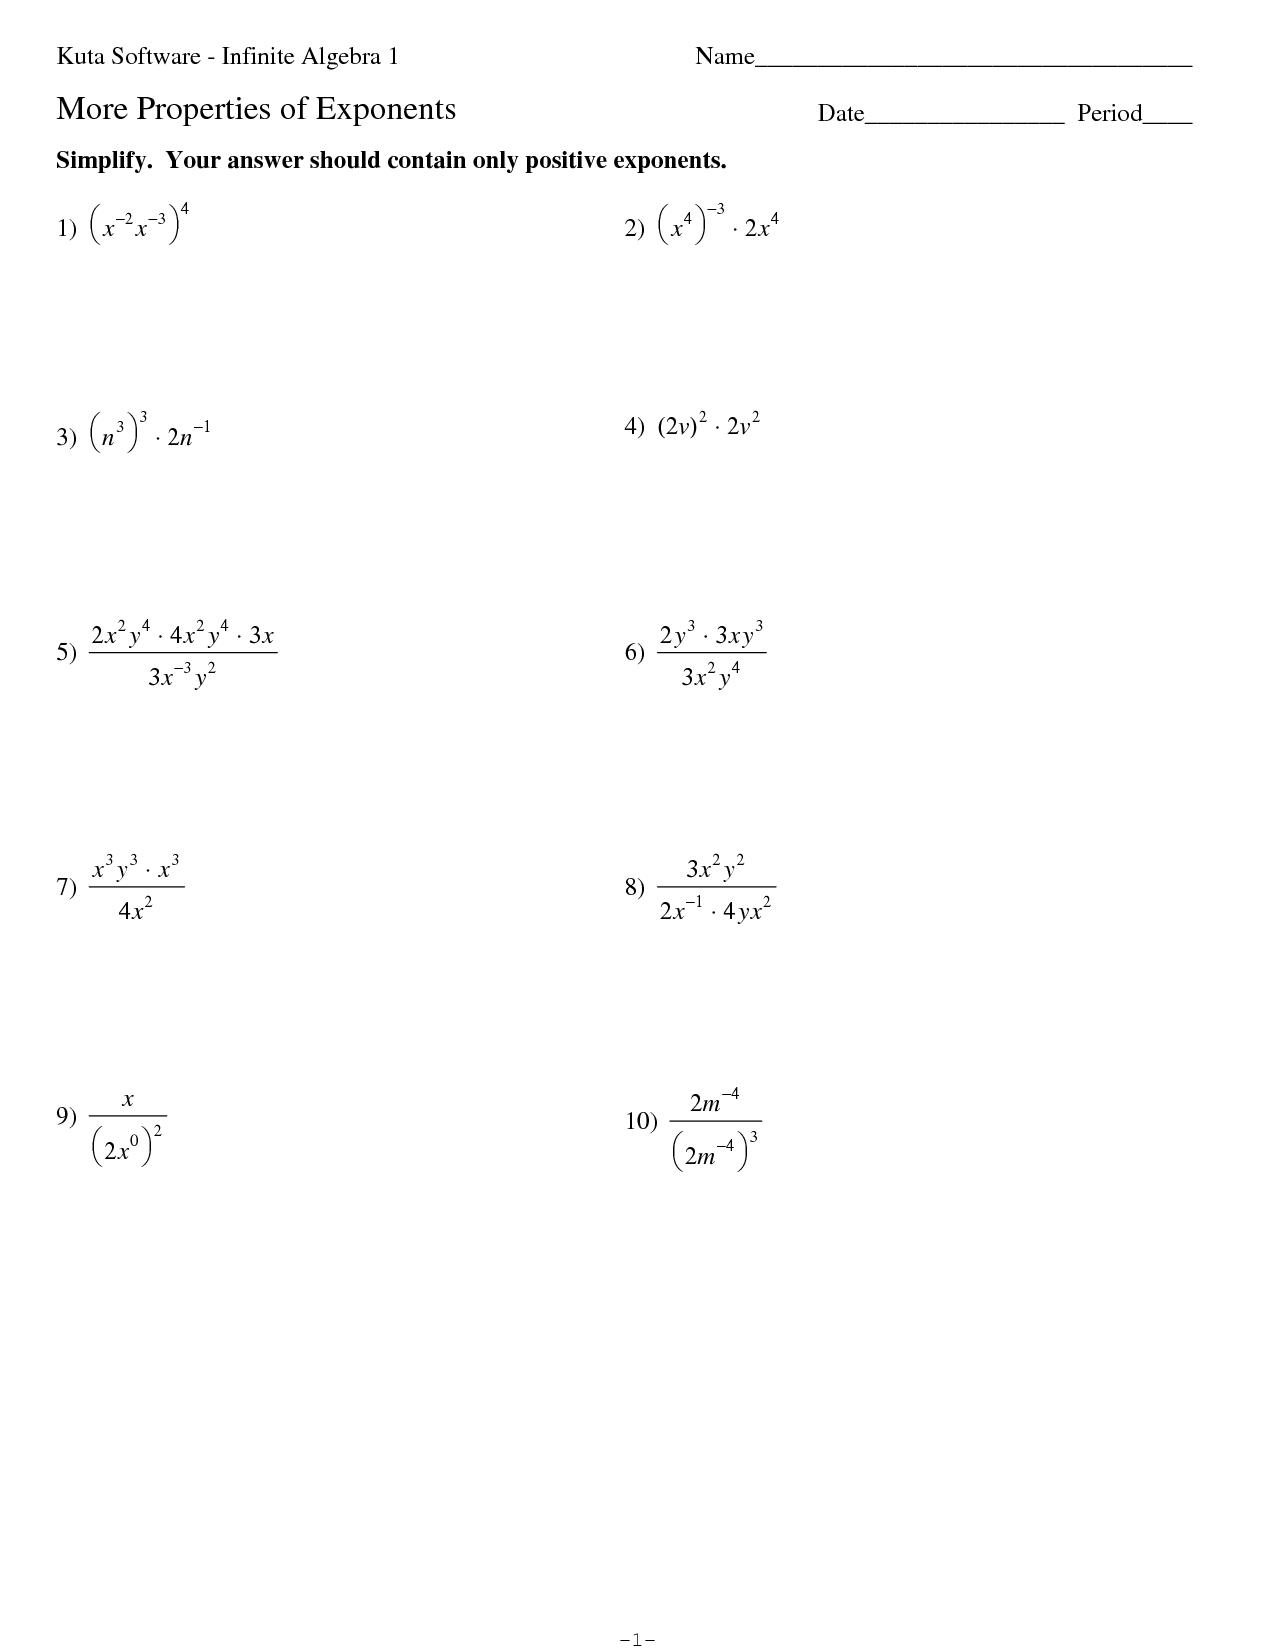 Kuta Worksheet Algebra 2